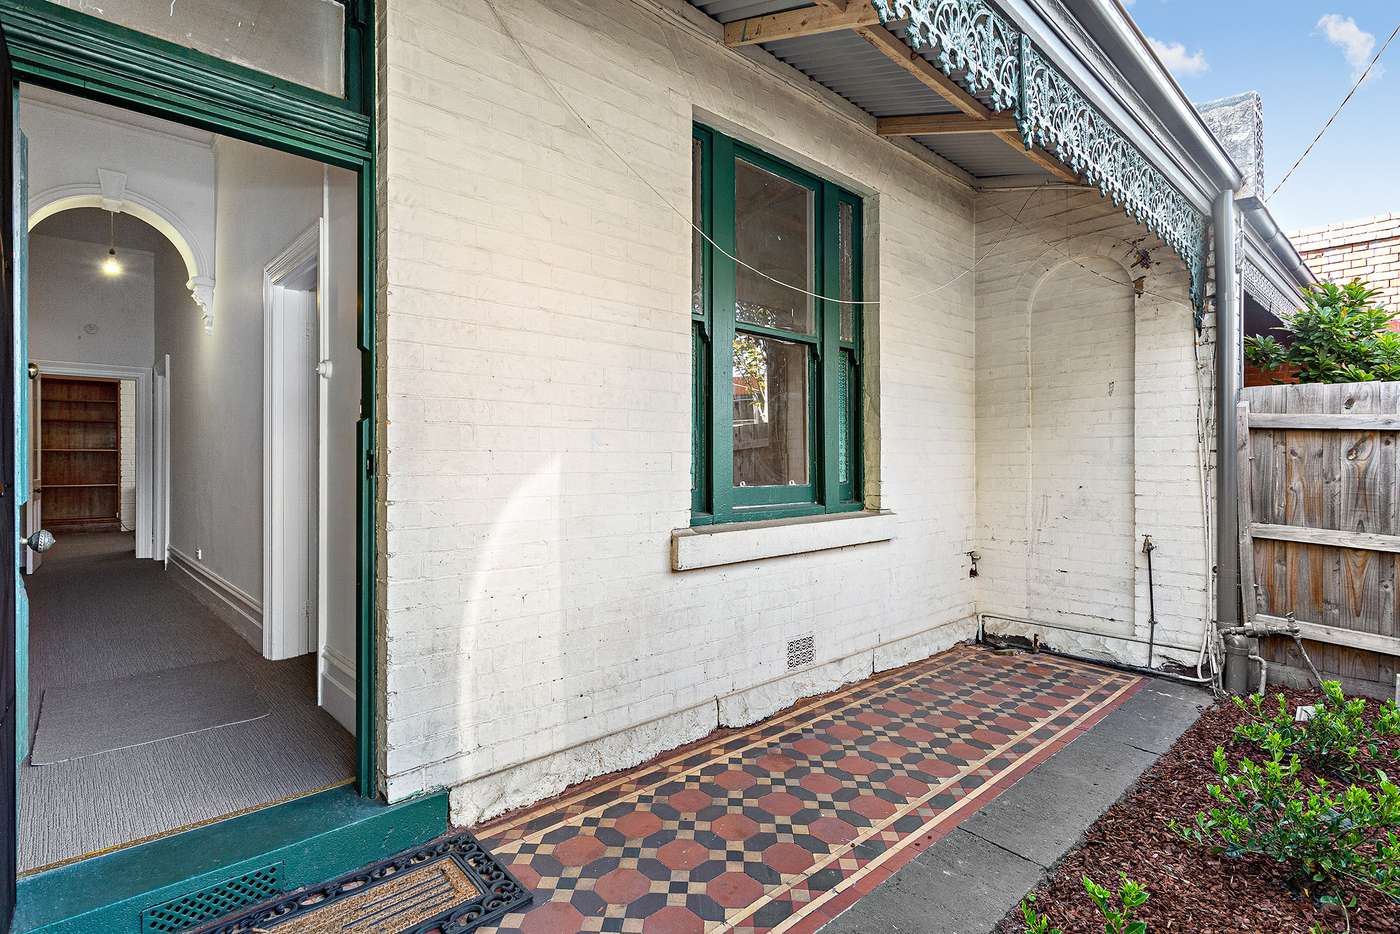 Main view of Homely house listing, 67 Church Street, Richmond VIC 3121